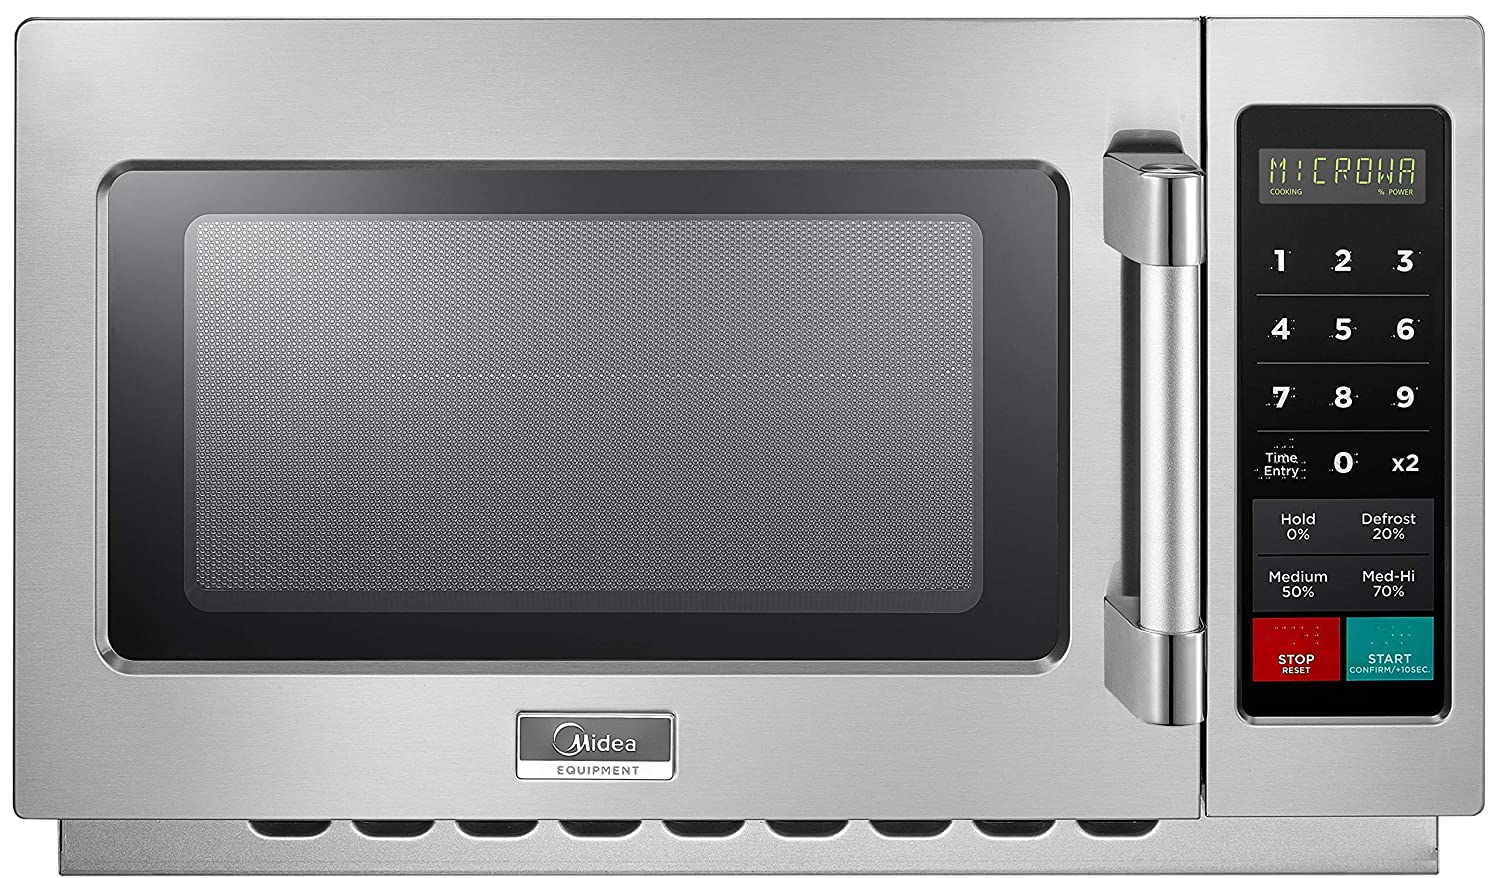 Midea 1034N1A Stainless Steel Countertop Commercial Microwave Oven, 1000W